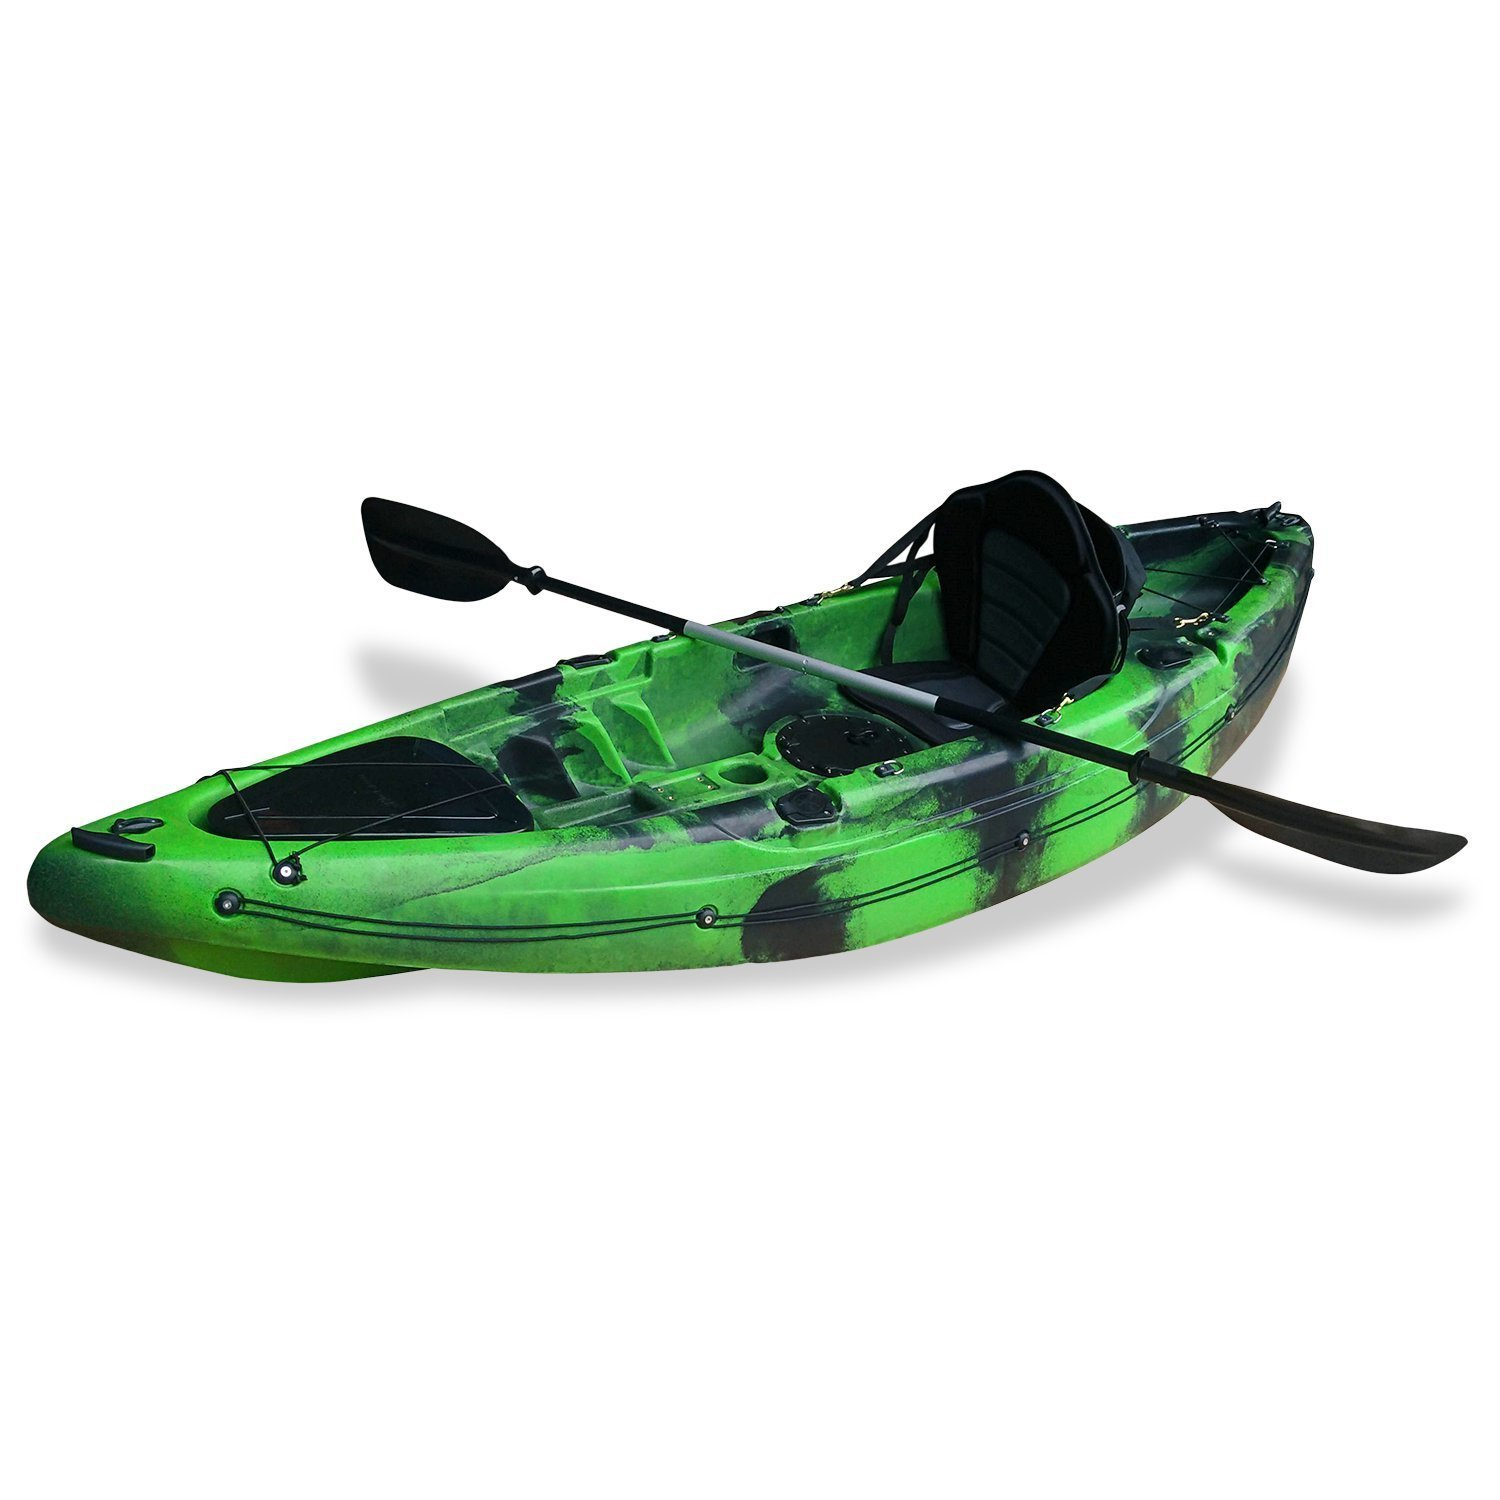 The Heritage Kayaks Featherlite 9.5 Angler Review 1